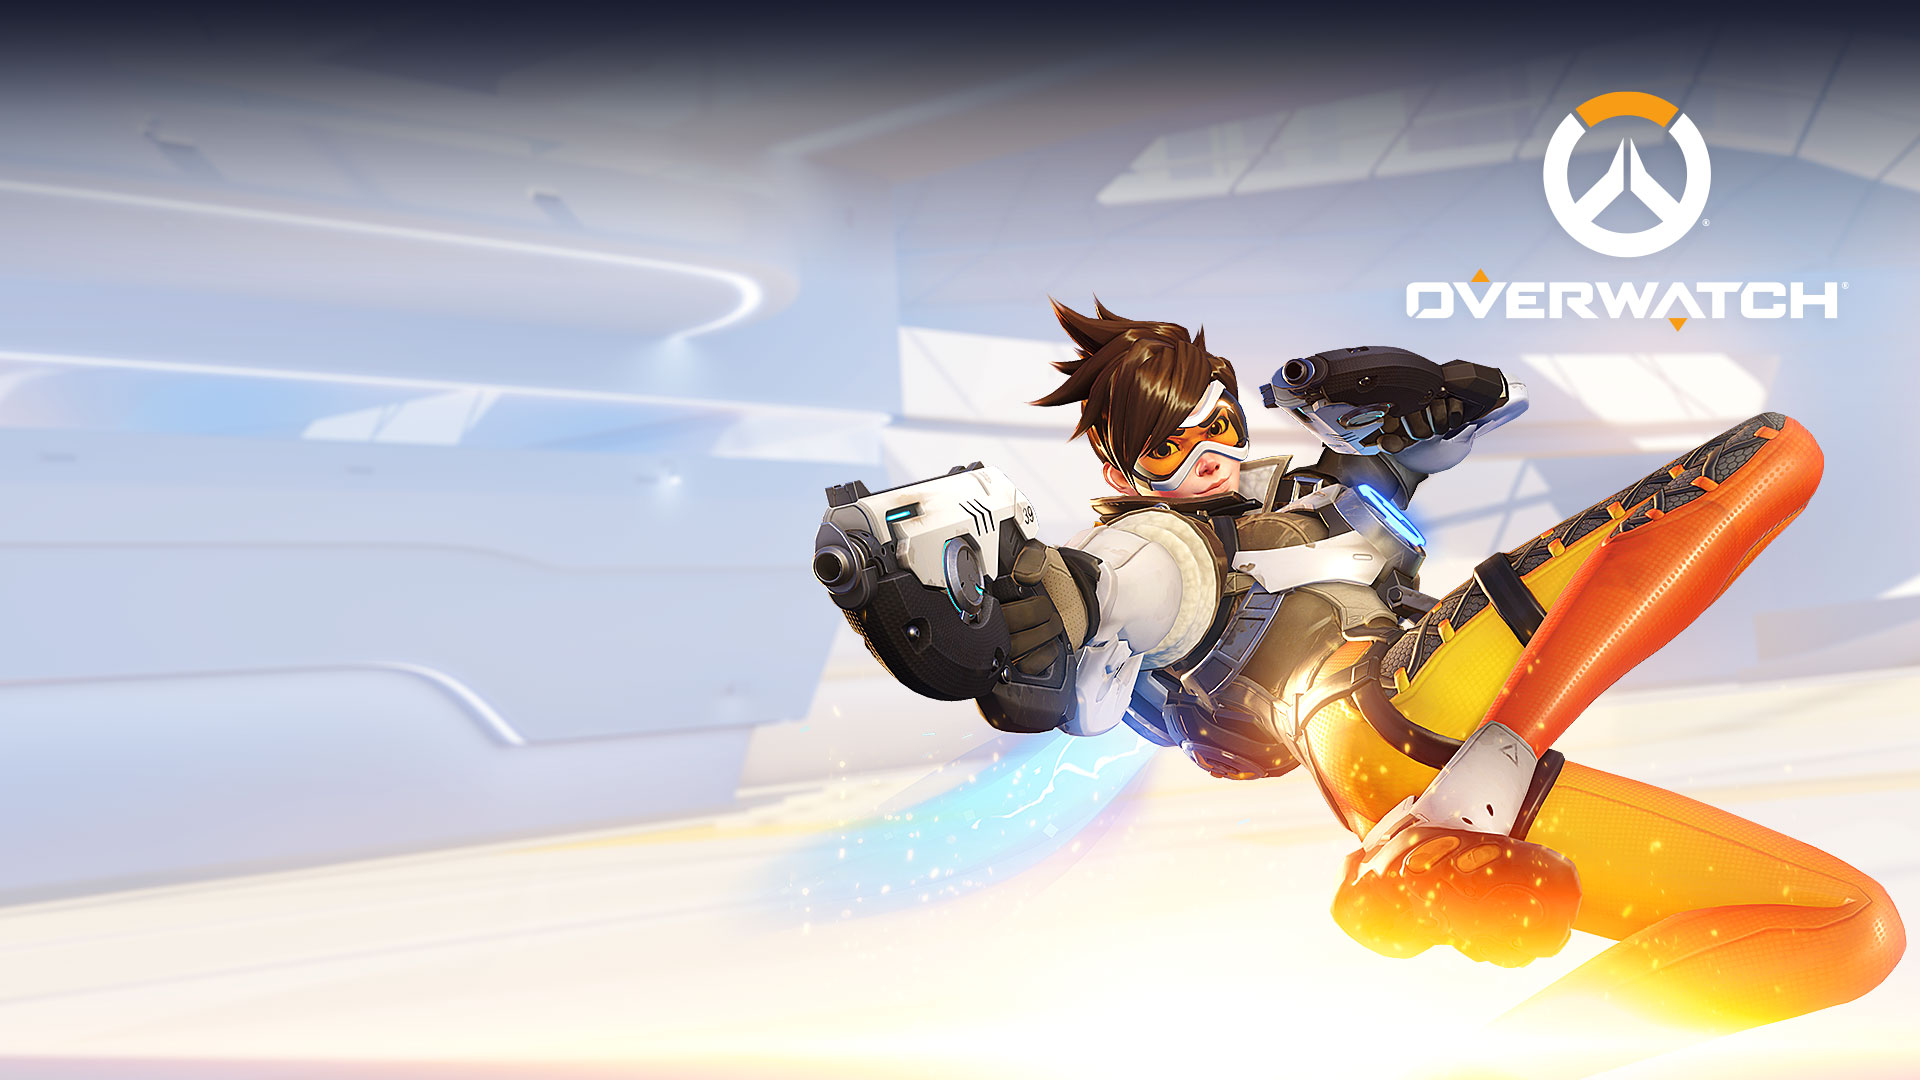 Overwatch : The Wait Is Over As the Cross-Play Is Finally On the Way